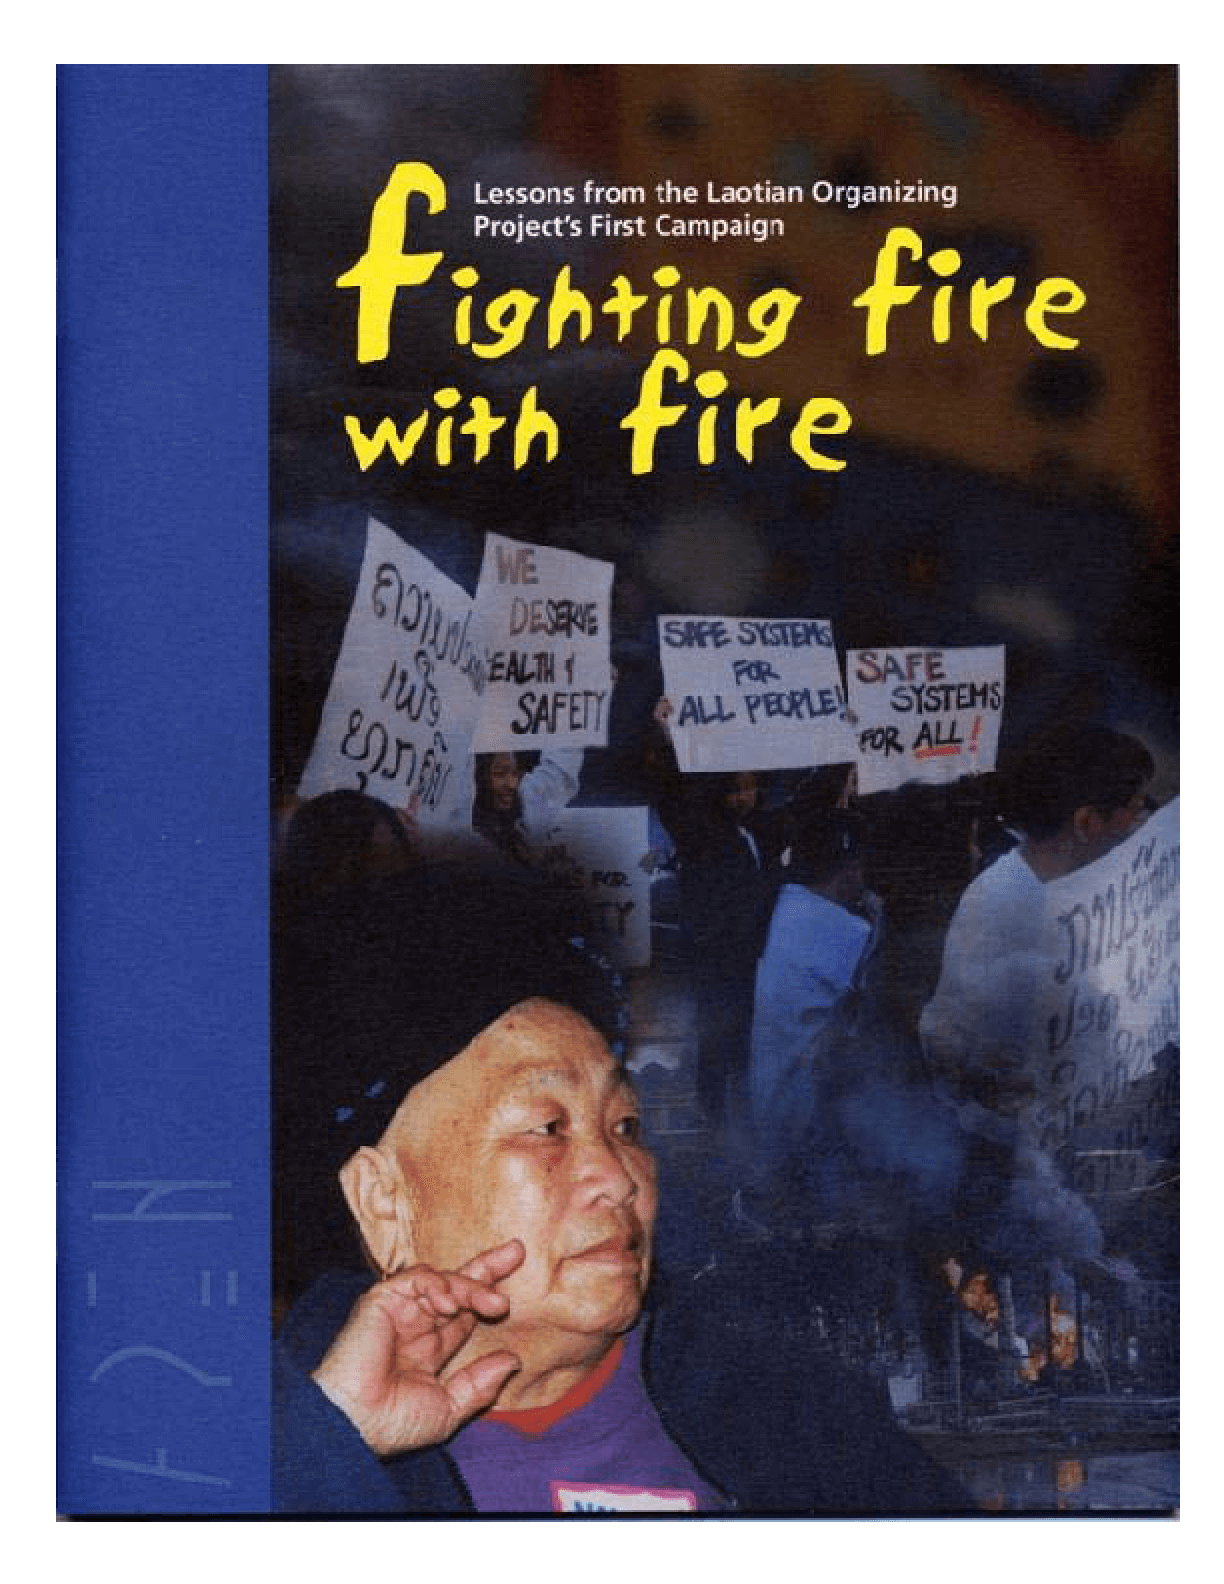 Fighting Fire with Fire: Lessons from the Laotian Organizing Project's First Campaign